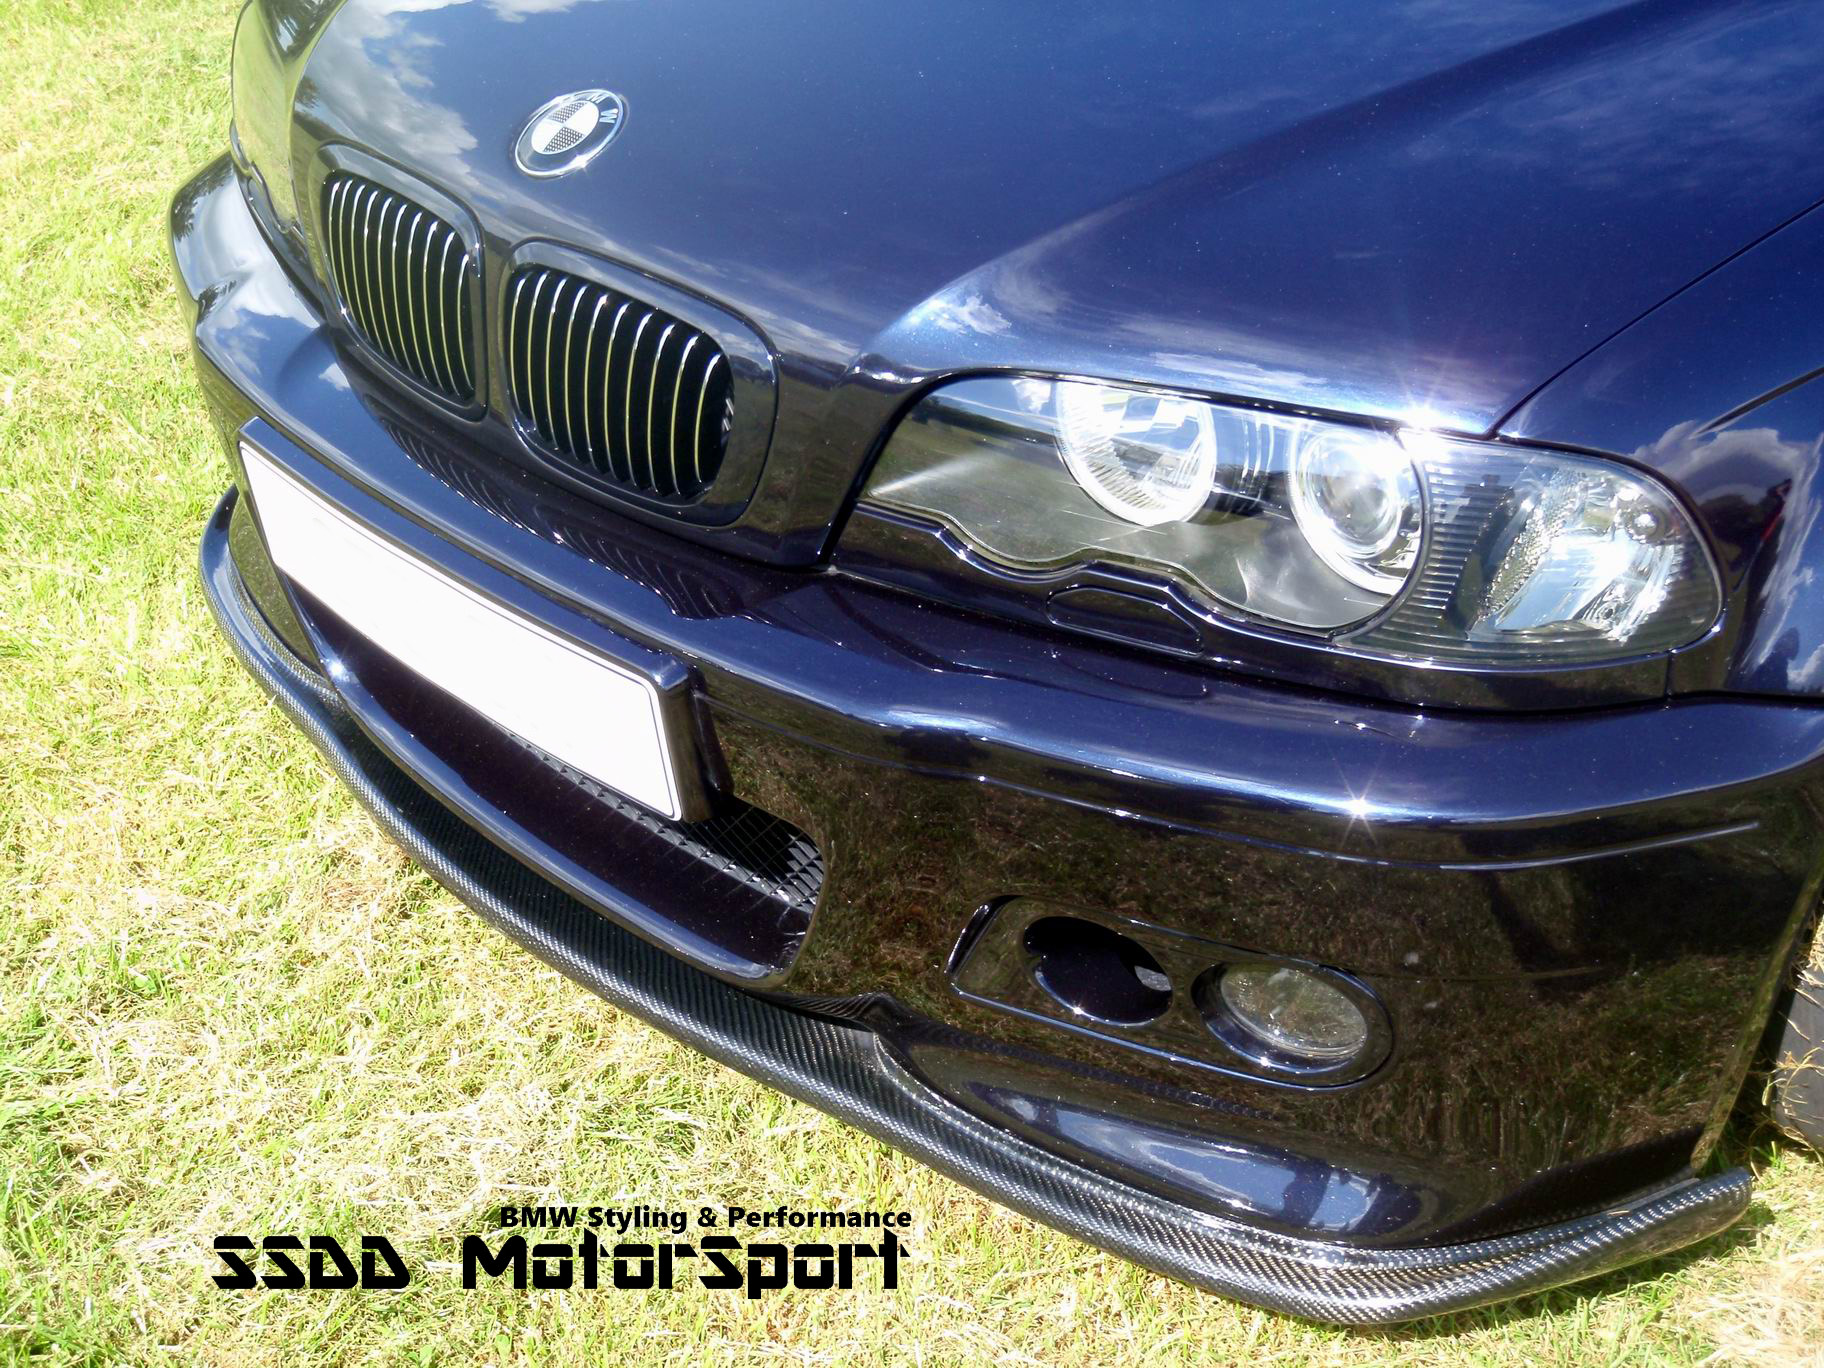 E46 M3 Racing One Piece Front Lip Splitter In Carbon Fibre Or Plastic